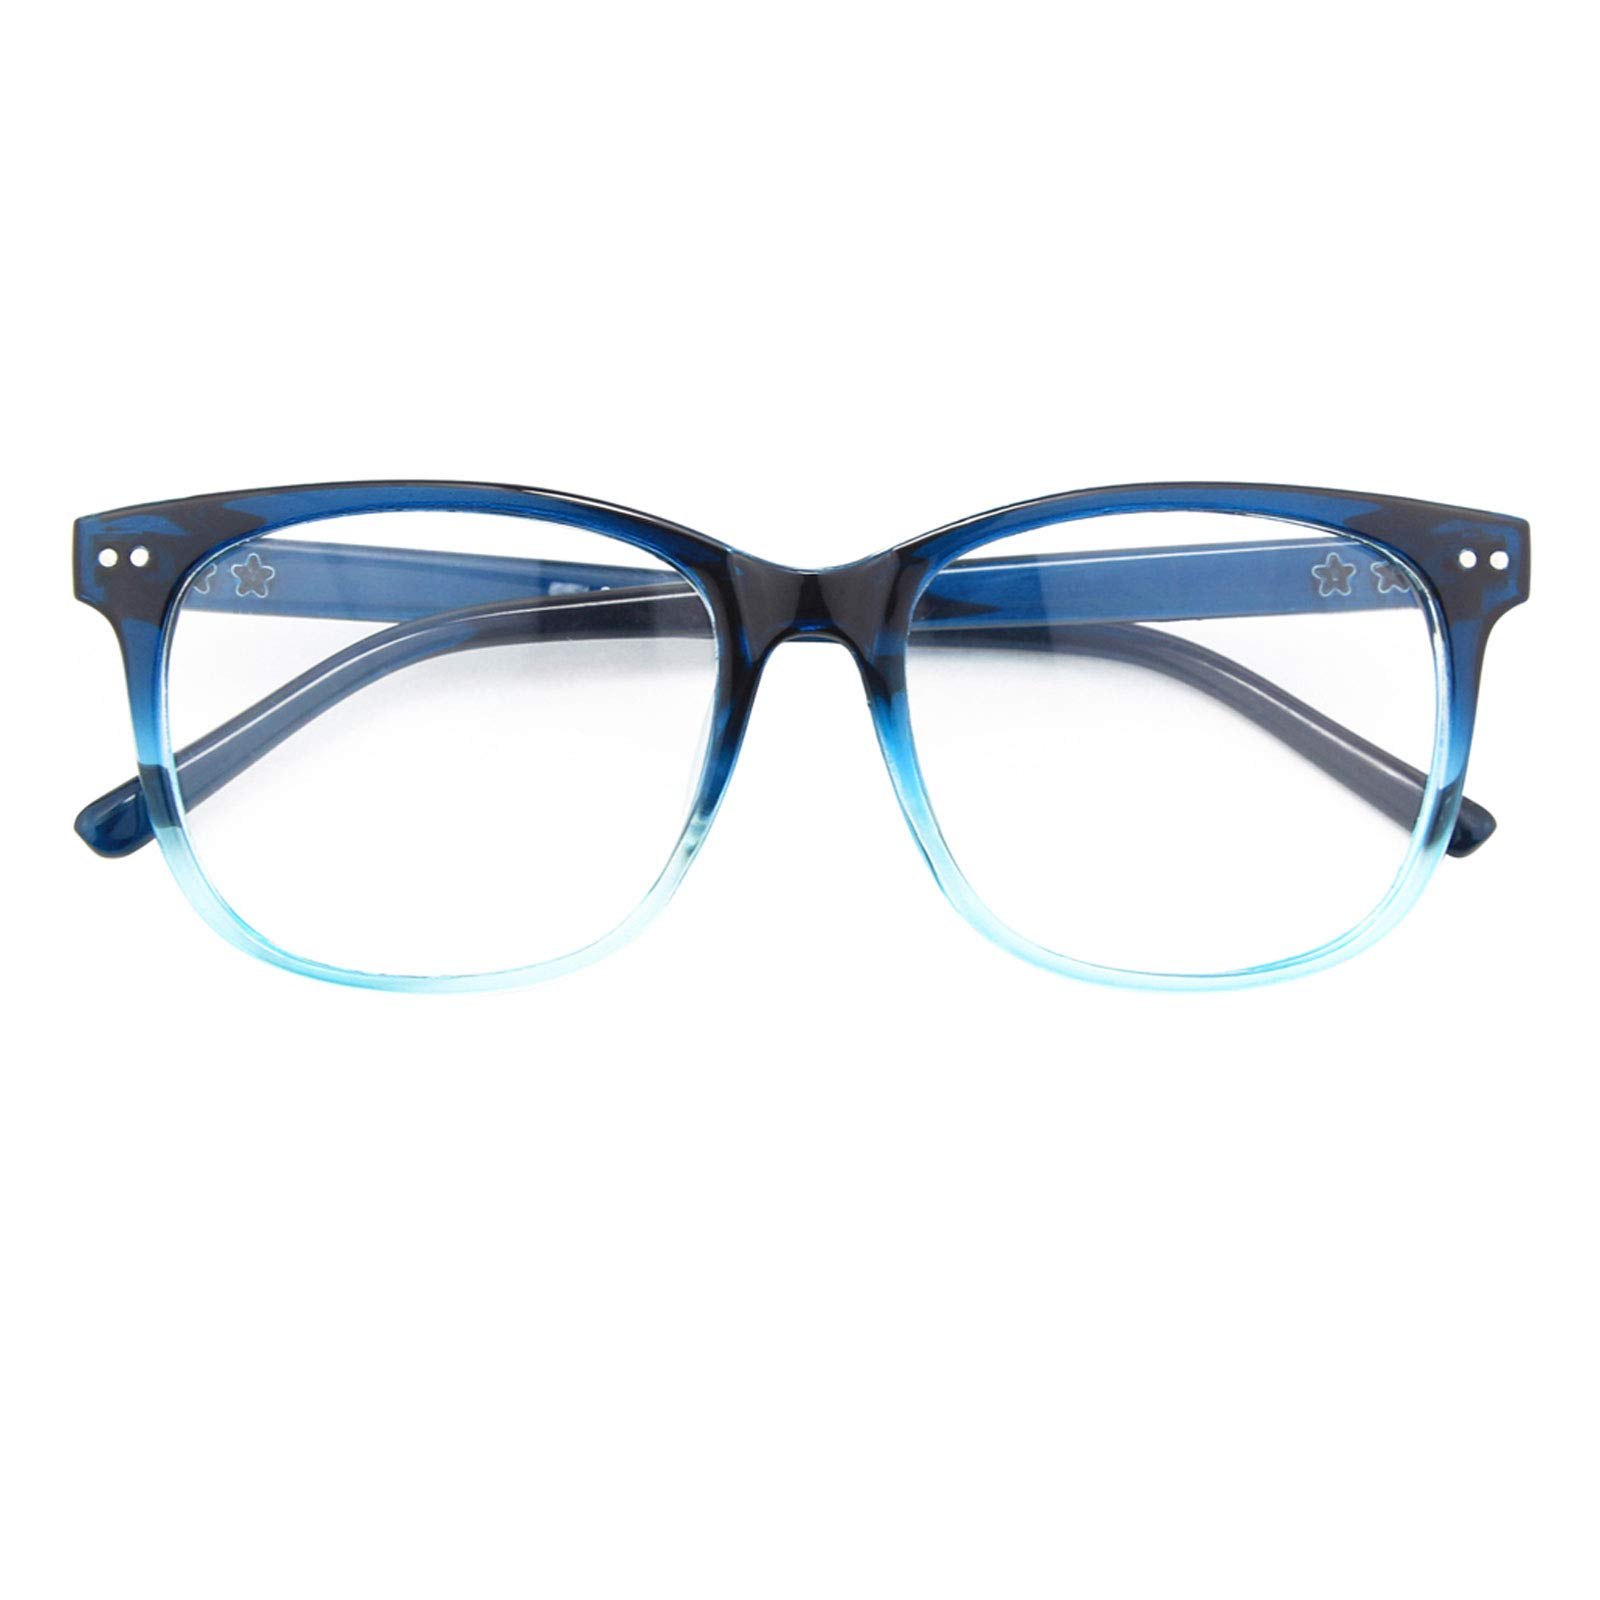 GQUEEN Fake Glasses for Women Men Non Prescription Glasses Clear Lens Glasses Eyeglasses, 201581